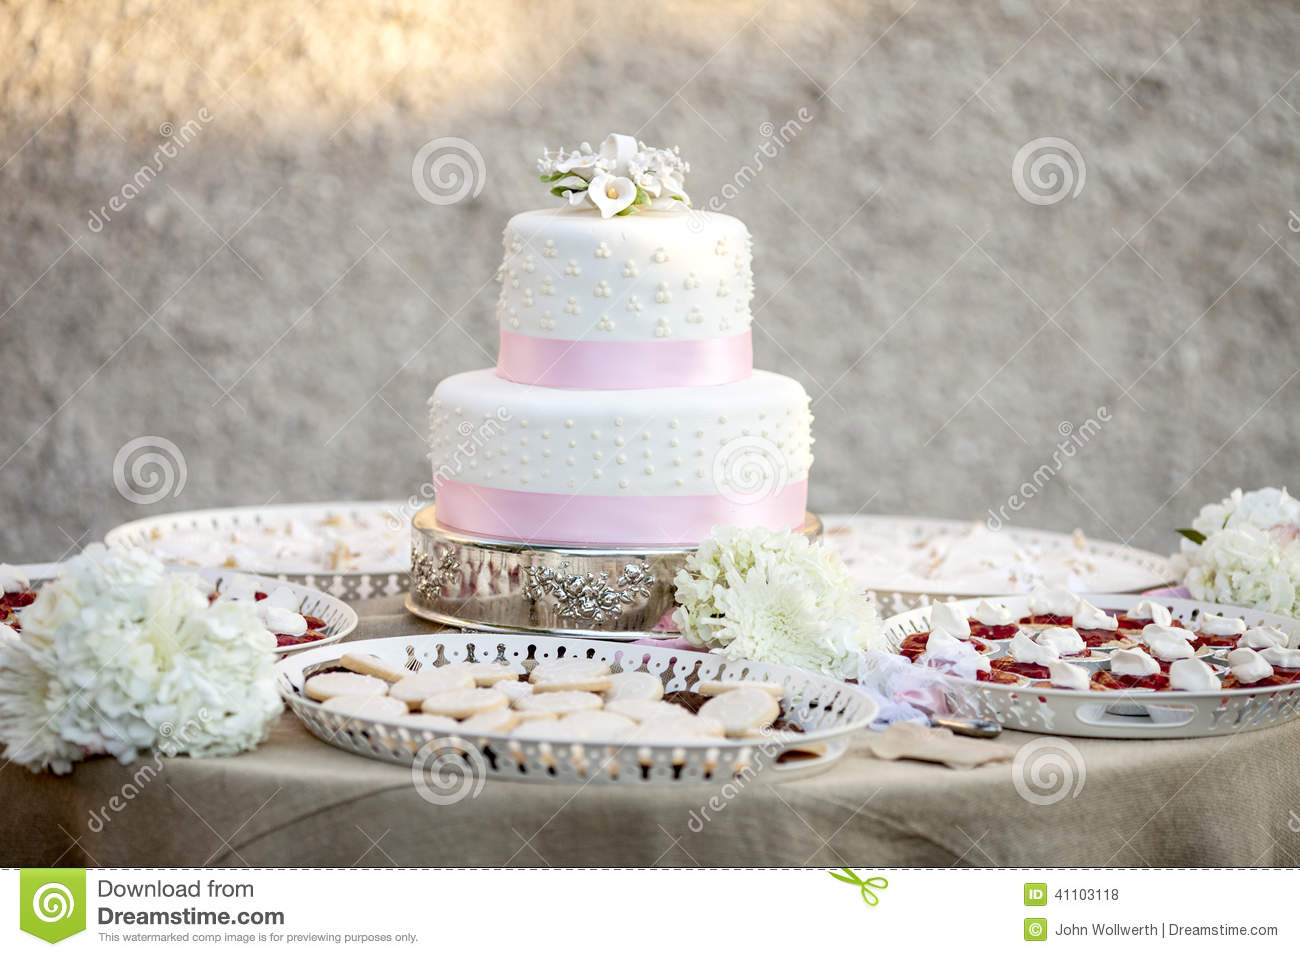 Simple Two Tier Wedding Cake Stock Photo Image Of Food Decorate